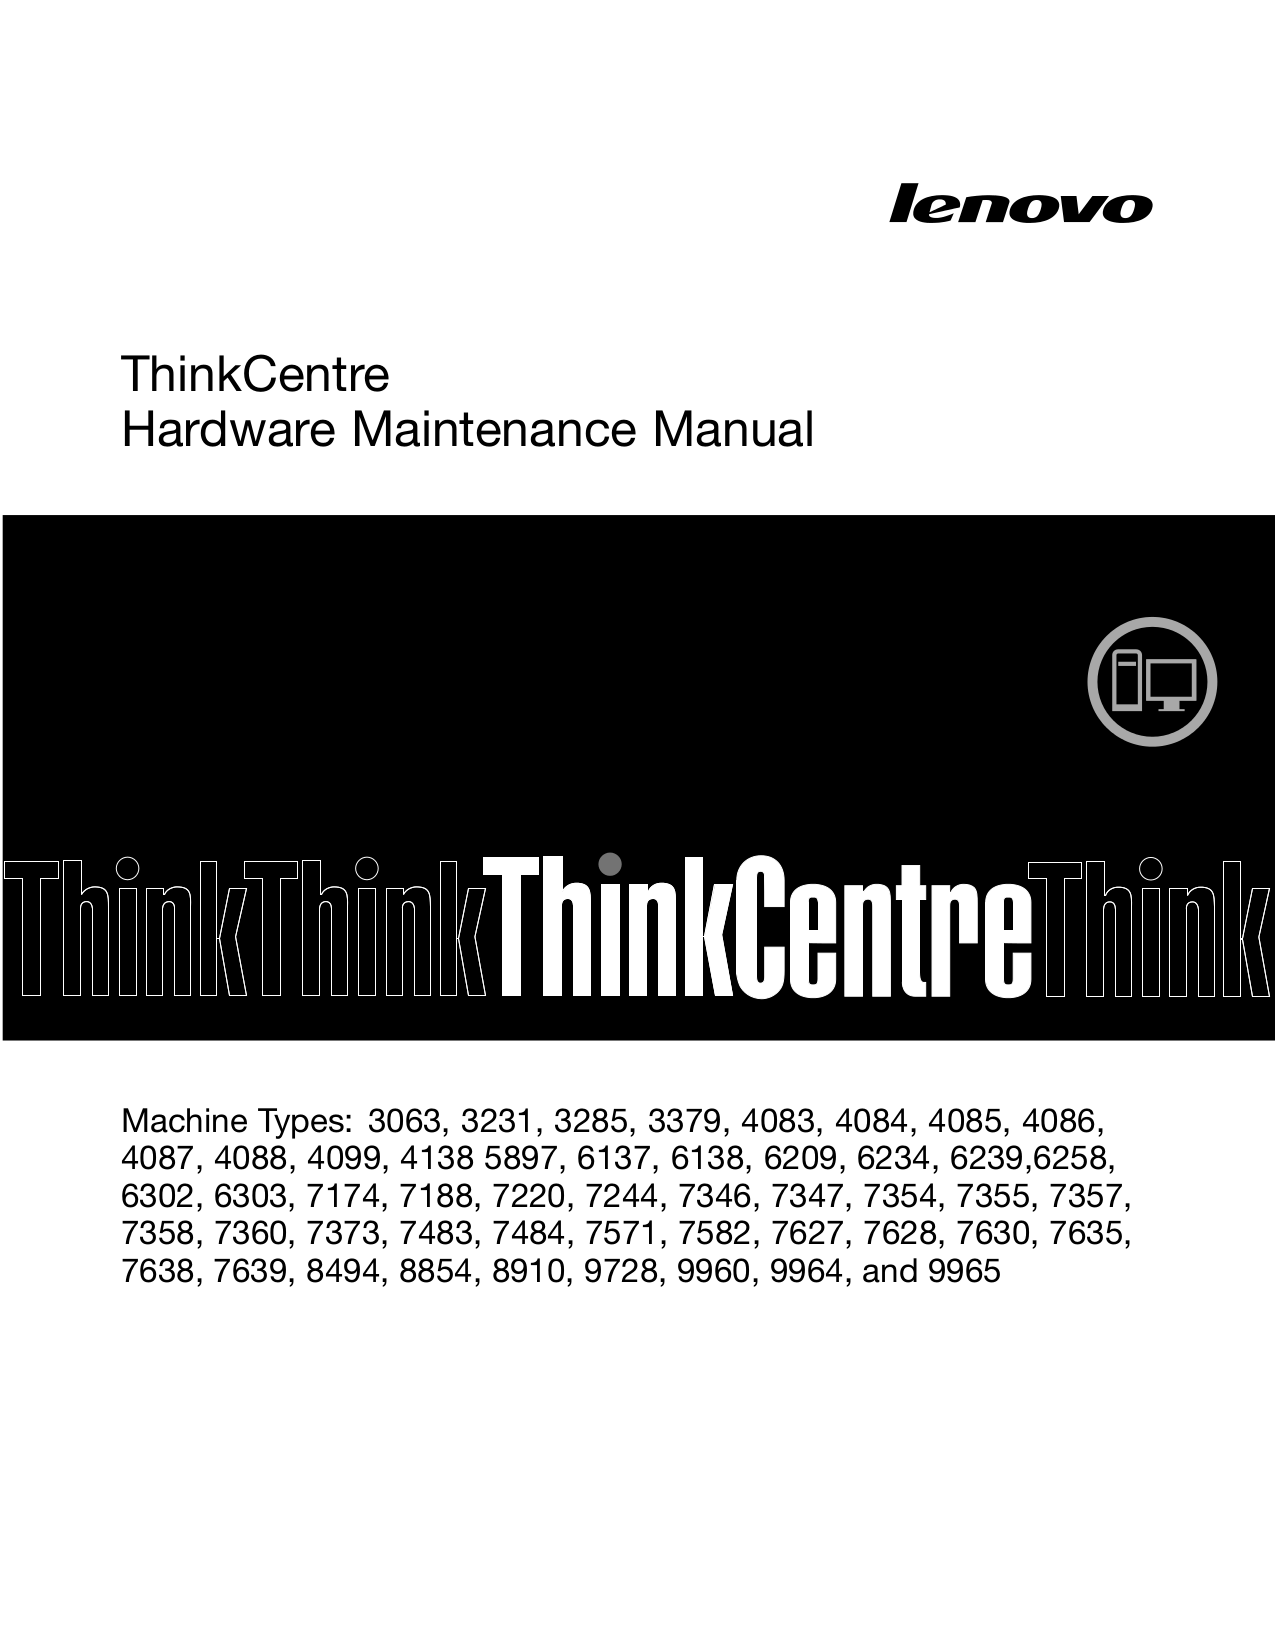 pdf for Lenovo Desktop ThinkCentre M58p 7188 manual